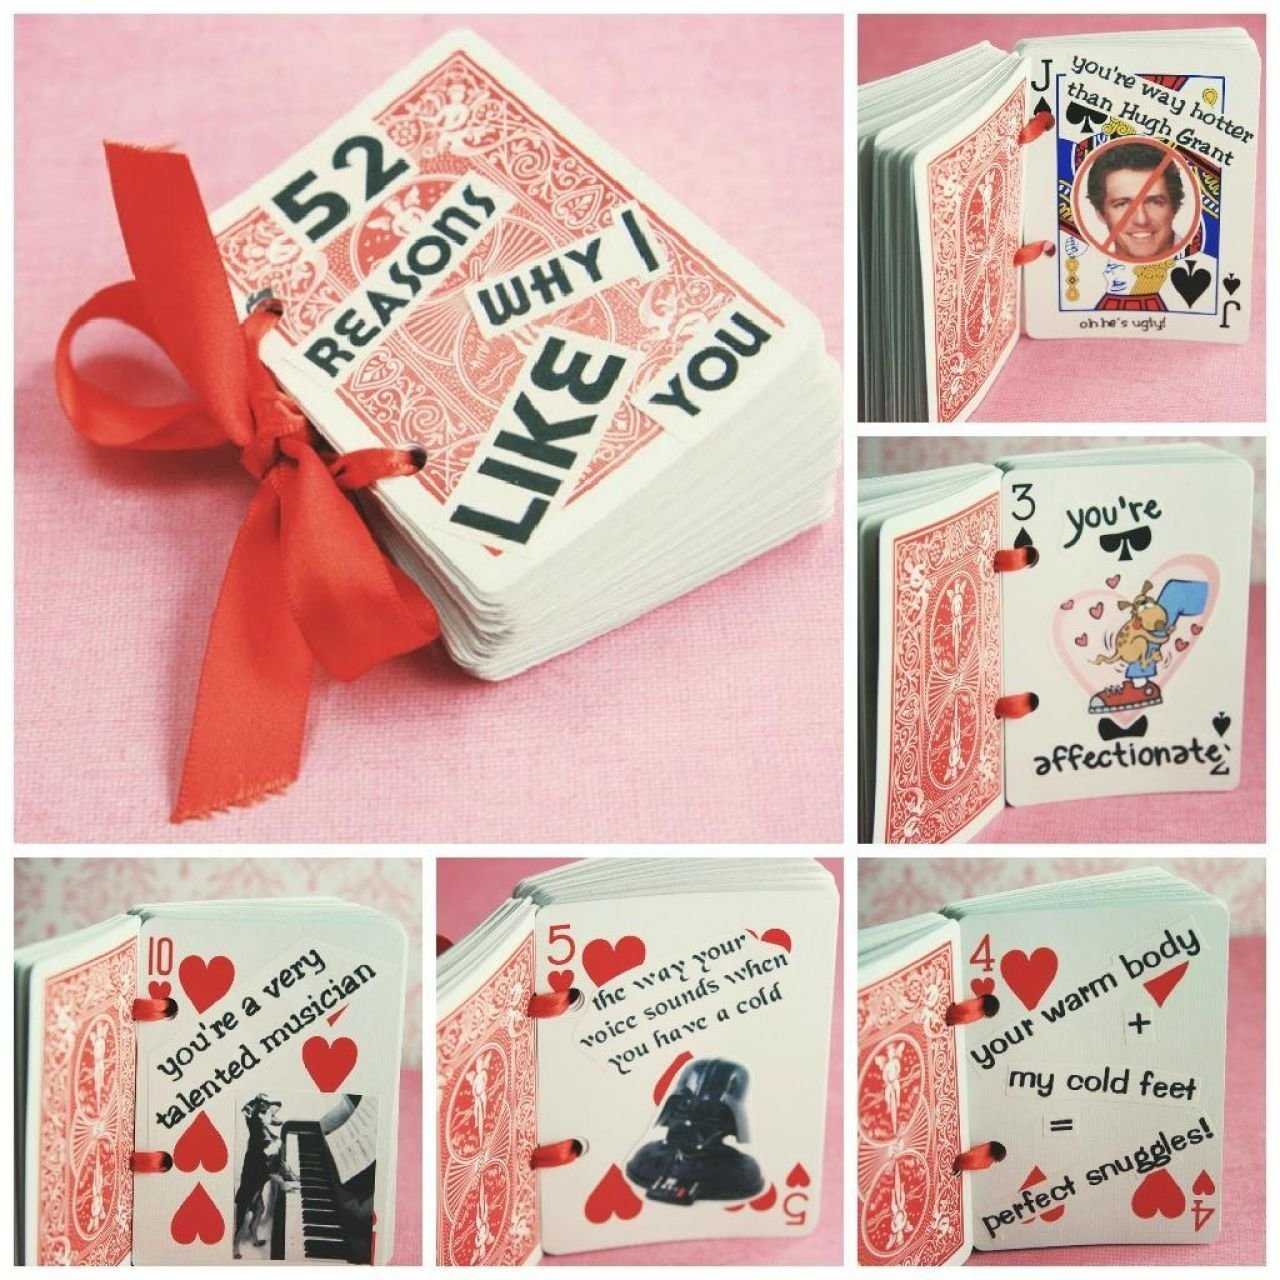 valentines day crafts him lovely valentine gifts your - dma homes